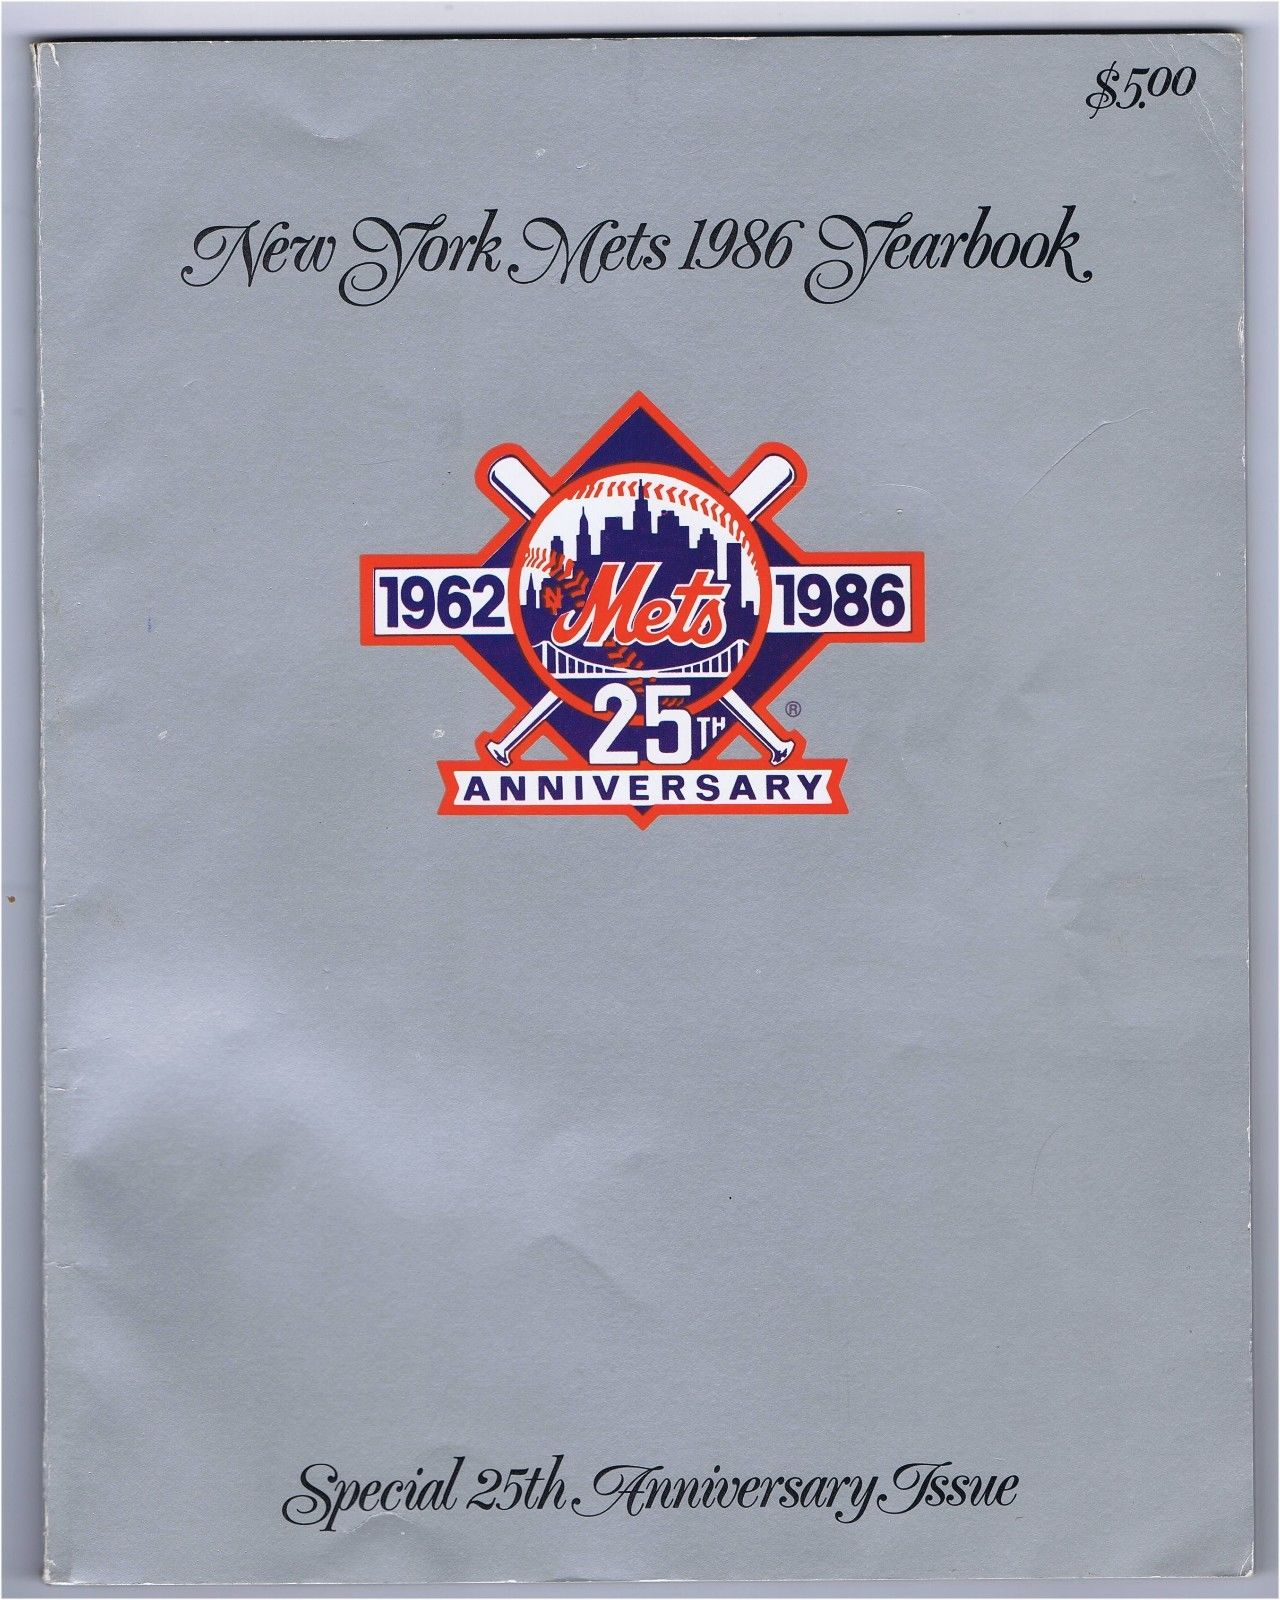 1986 Mets Yearbook Ws Champs Signed Gary Carter Wilson Gooden 5 Auto Cbm Coa